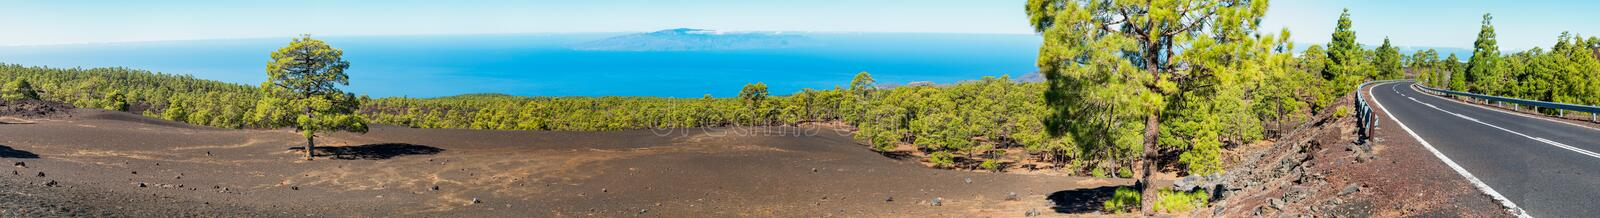 Tenerife, panoramic view of mountain road to Teide Volcano royalty free stock photography